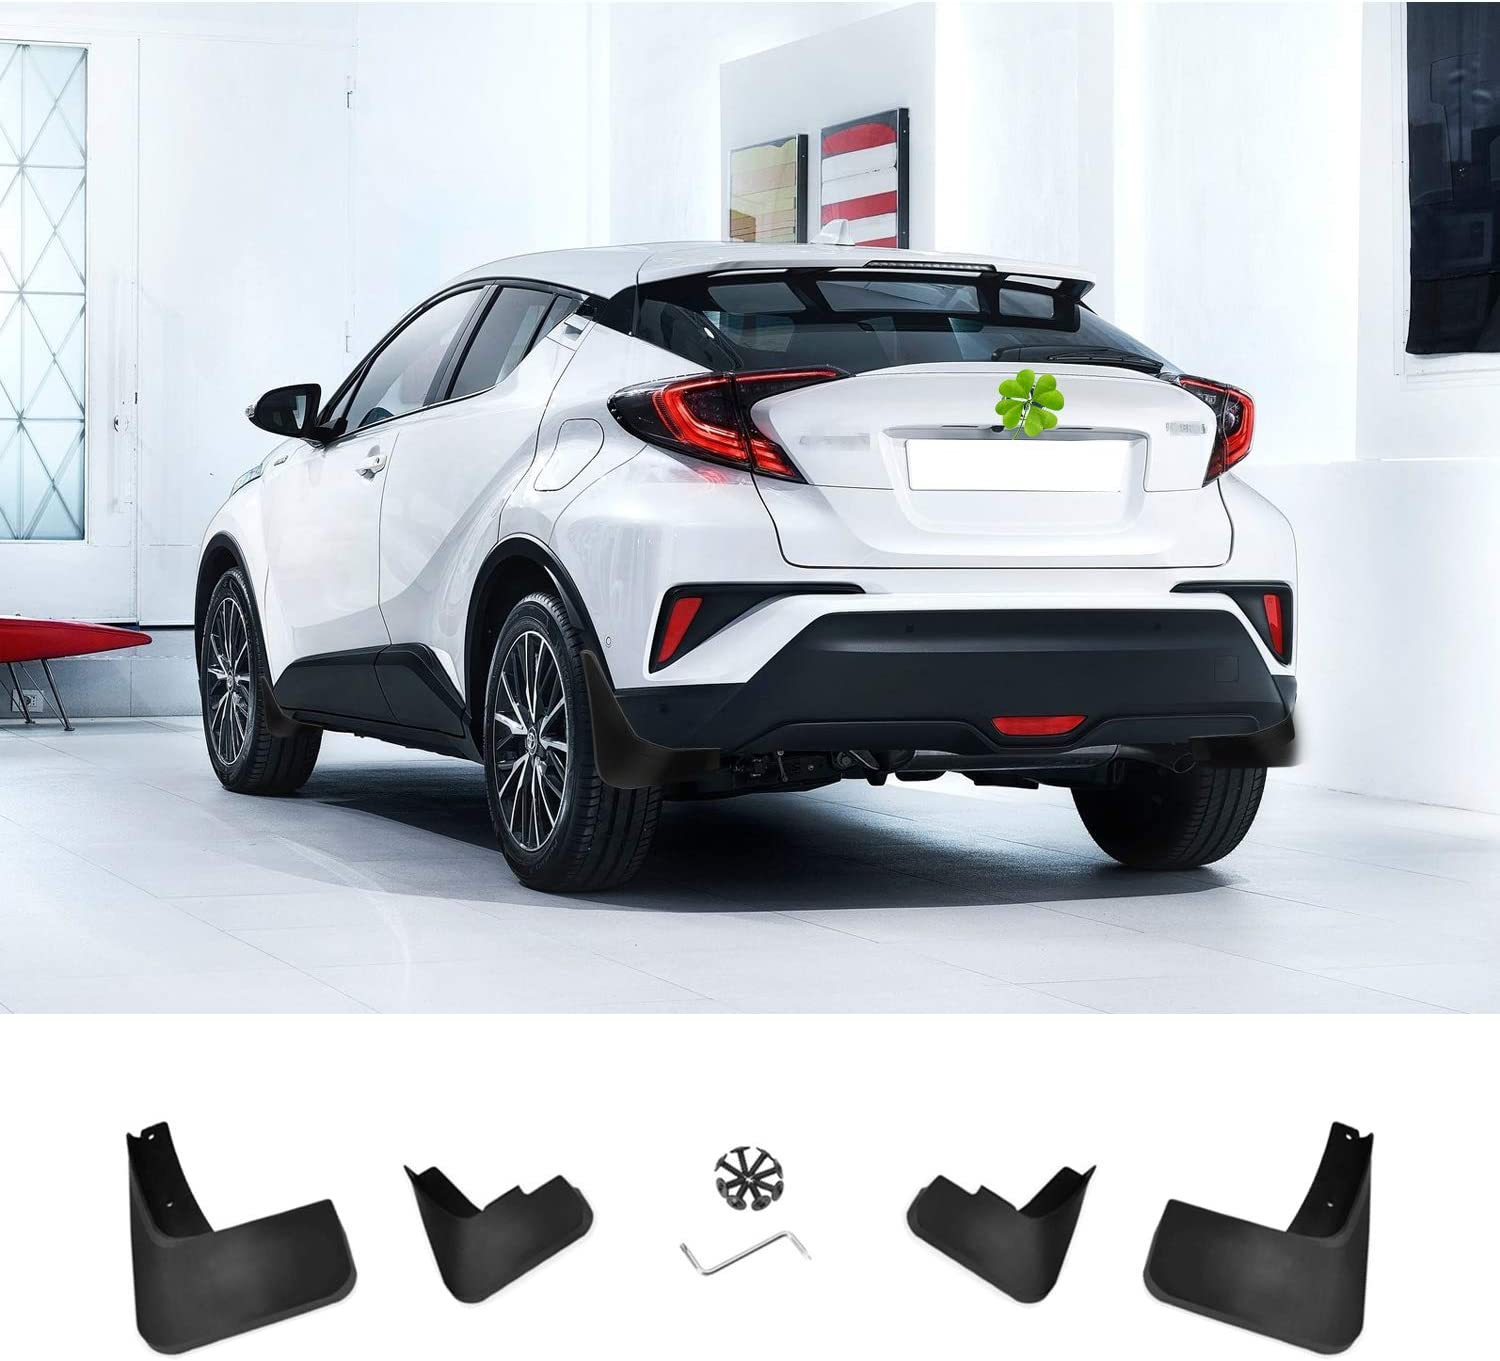 Ruiya C-HR Car Mudflaps Mudflaps Mudguard Splash Guard Black Plastic Complete Protection Fender Pack of 4